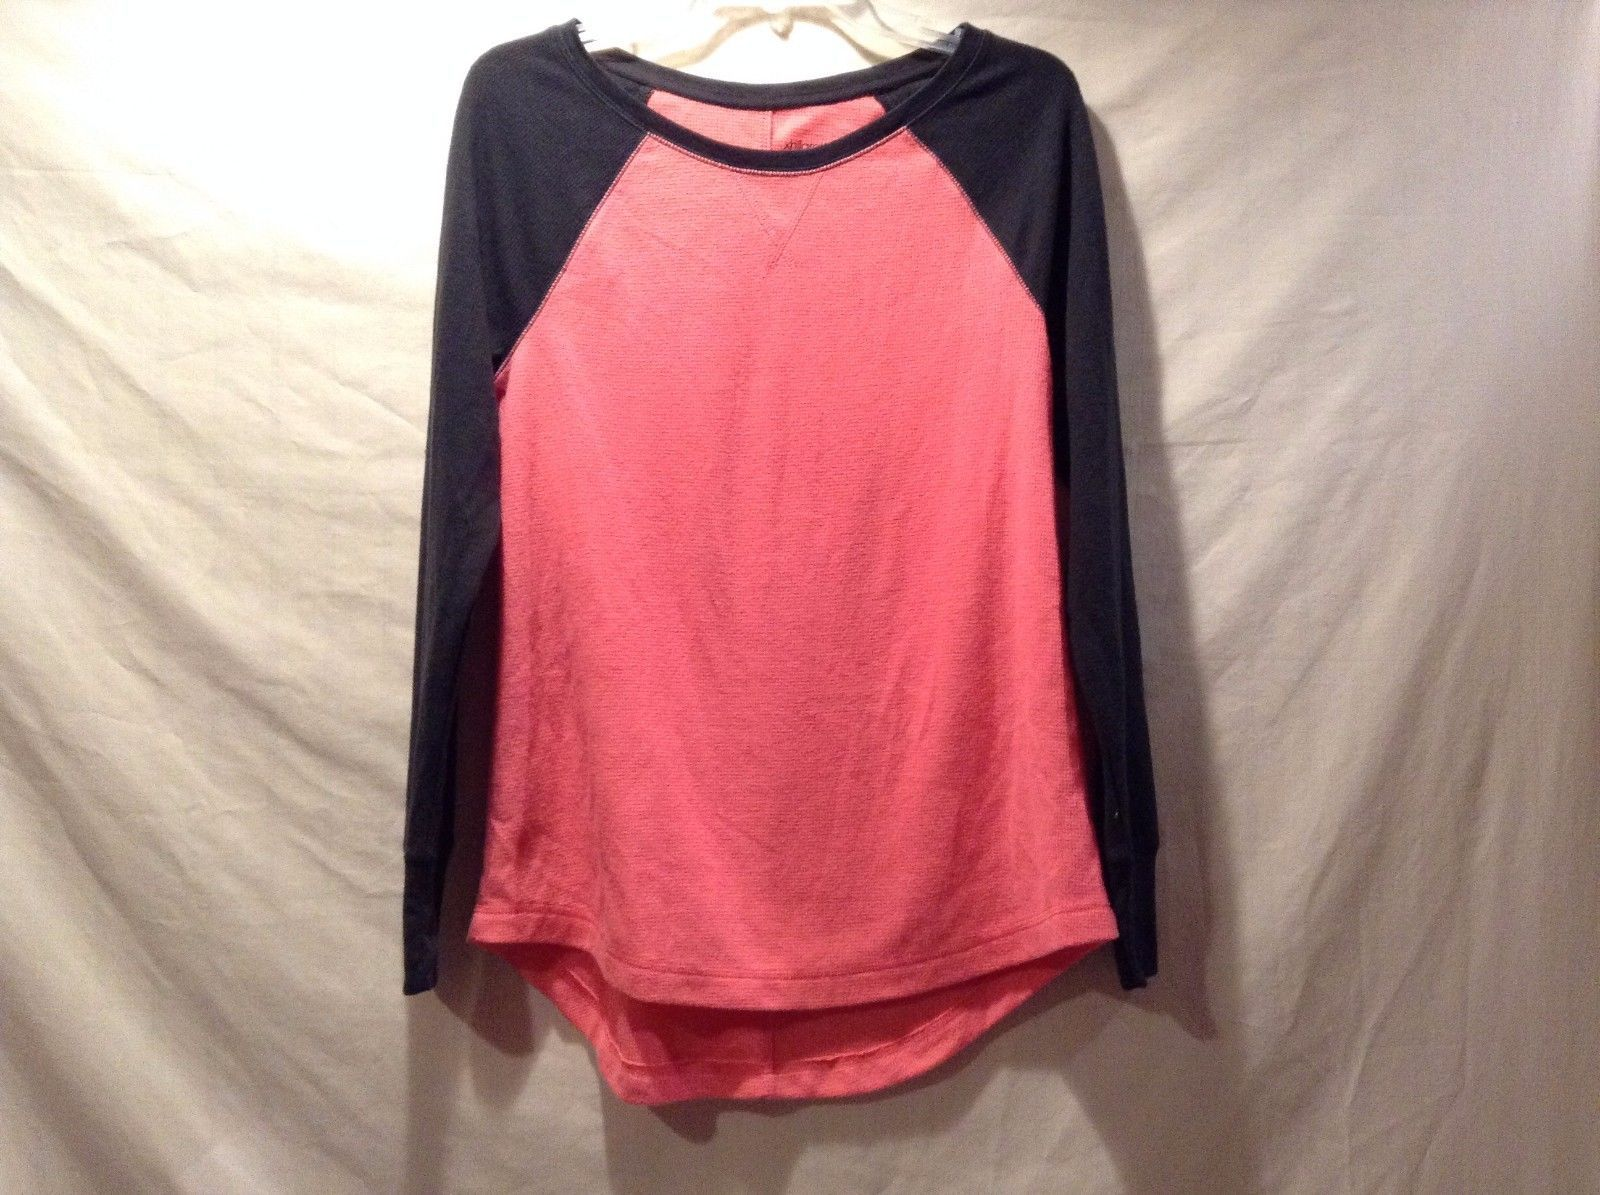 Great Condition Xhilaration Medium Sleepwear Shirt Pink Black Baseball Cotton